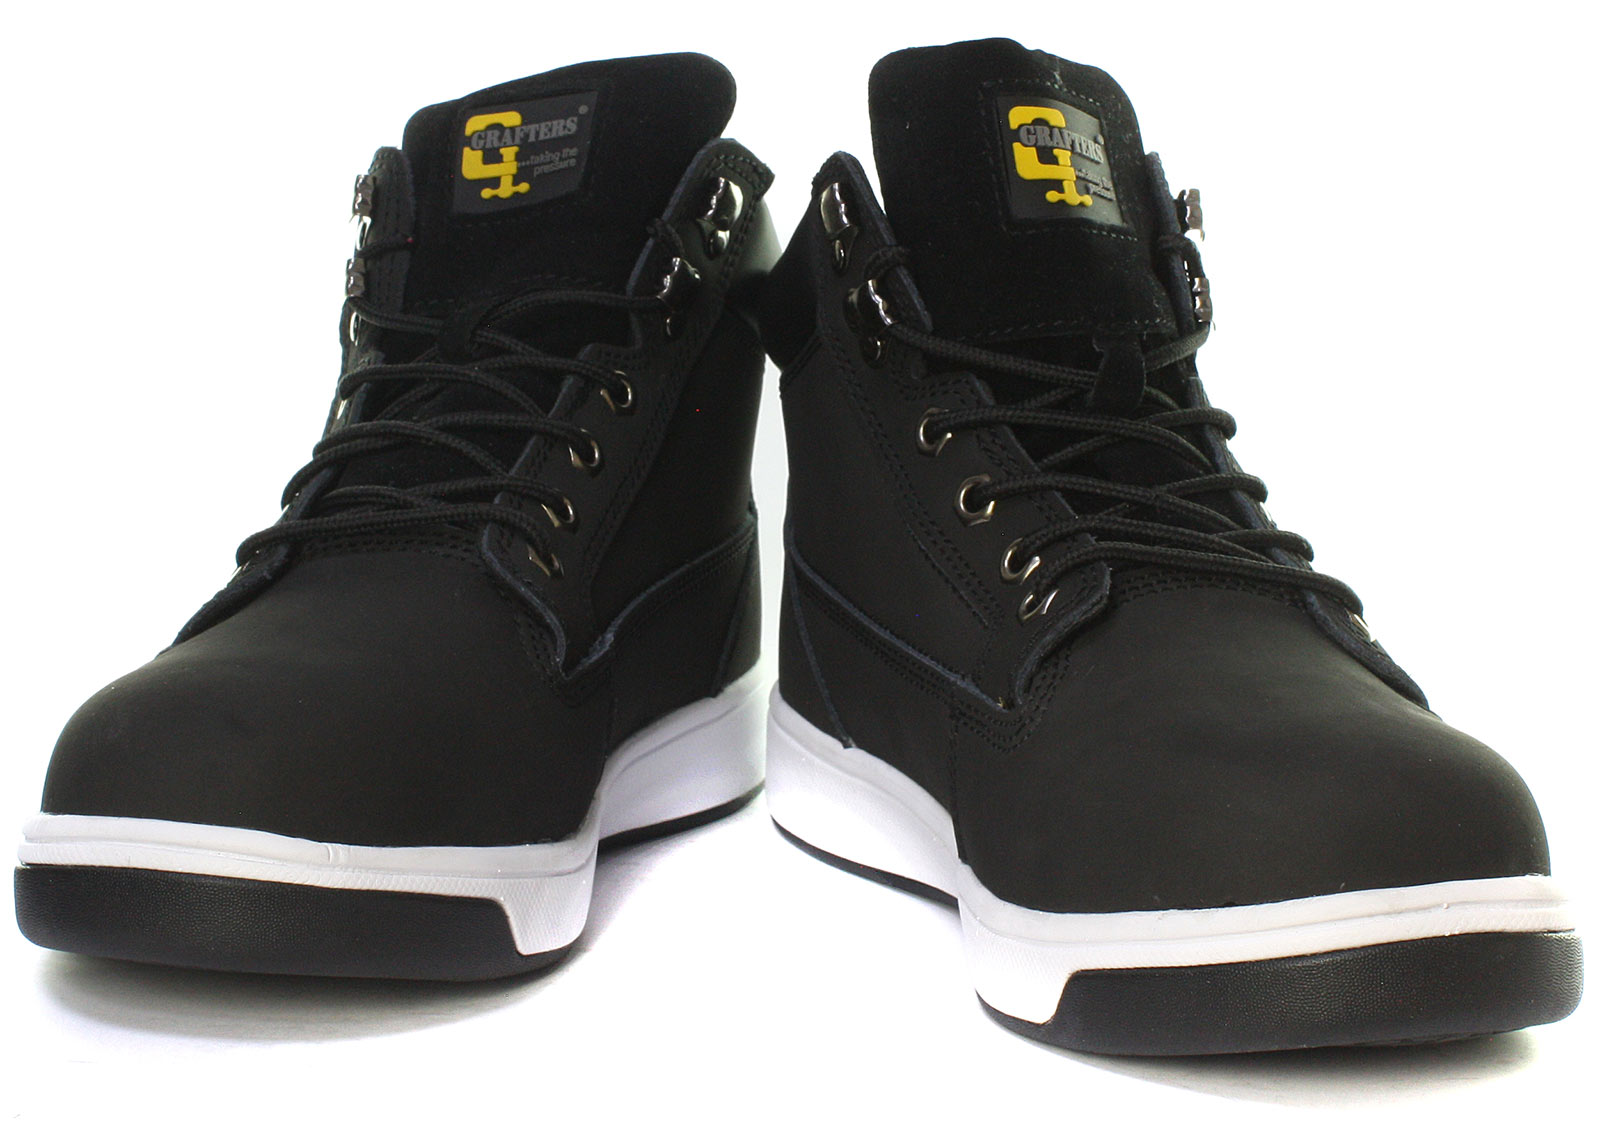 New-Grafters-M057A-Unisex-Safety-Trainer-Boots-ALL-SIZES miniature 2